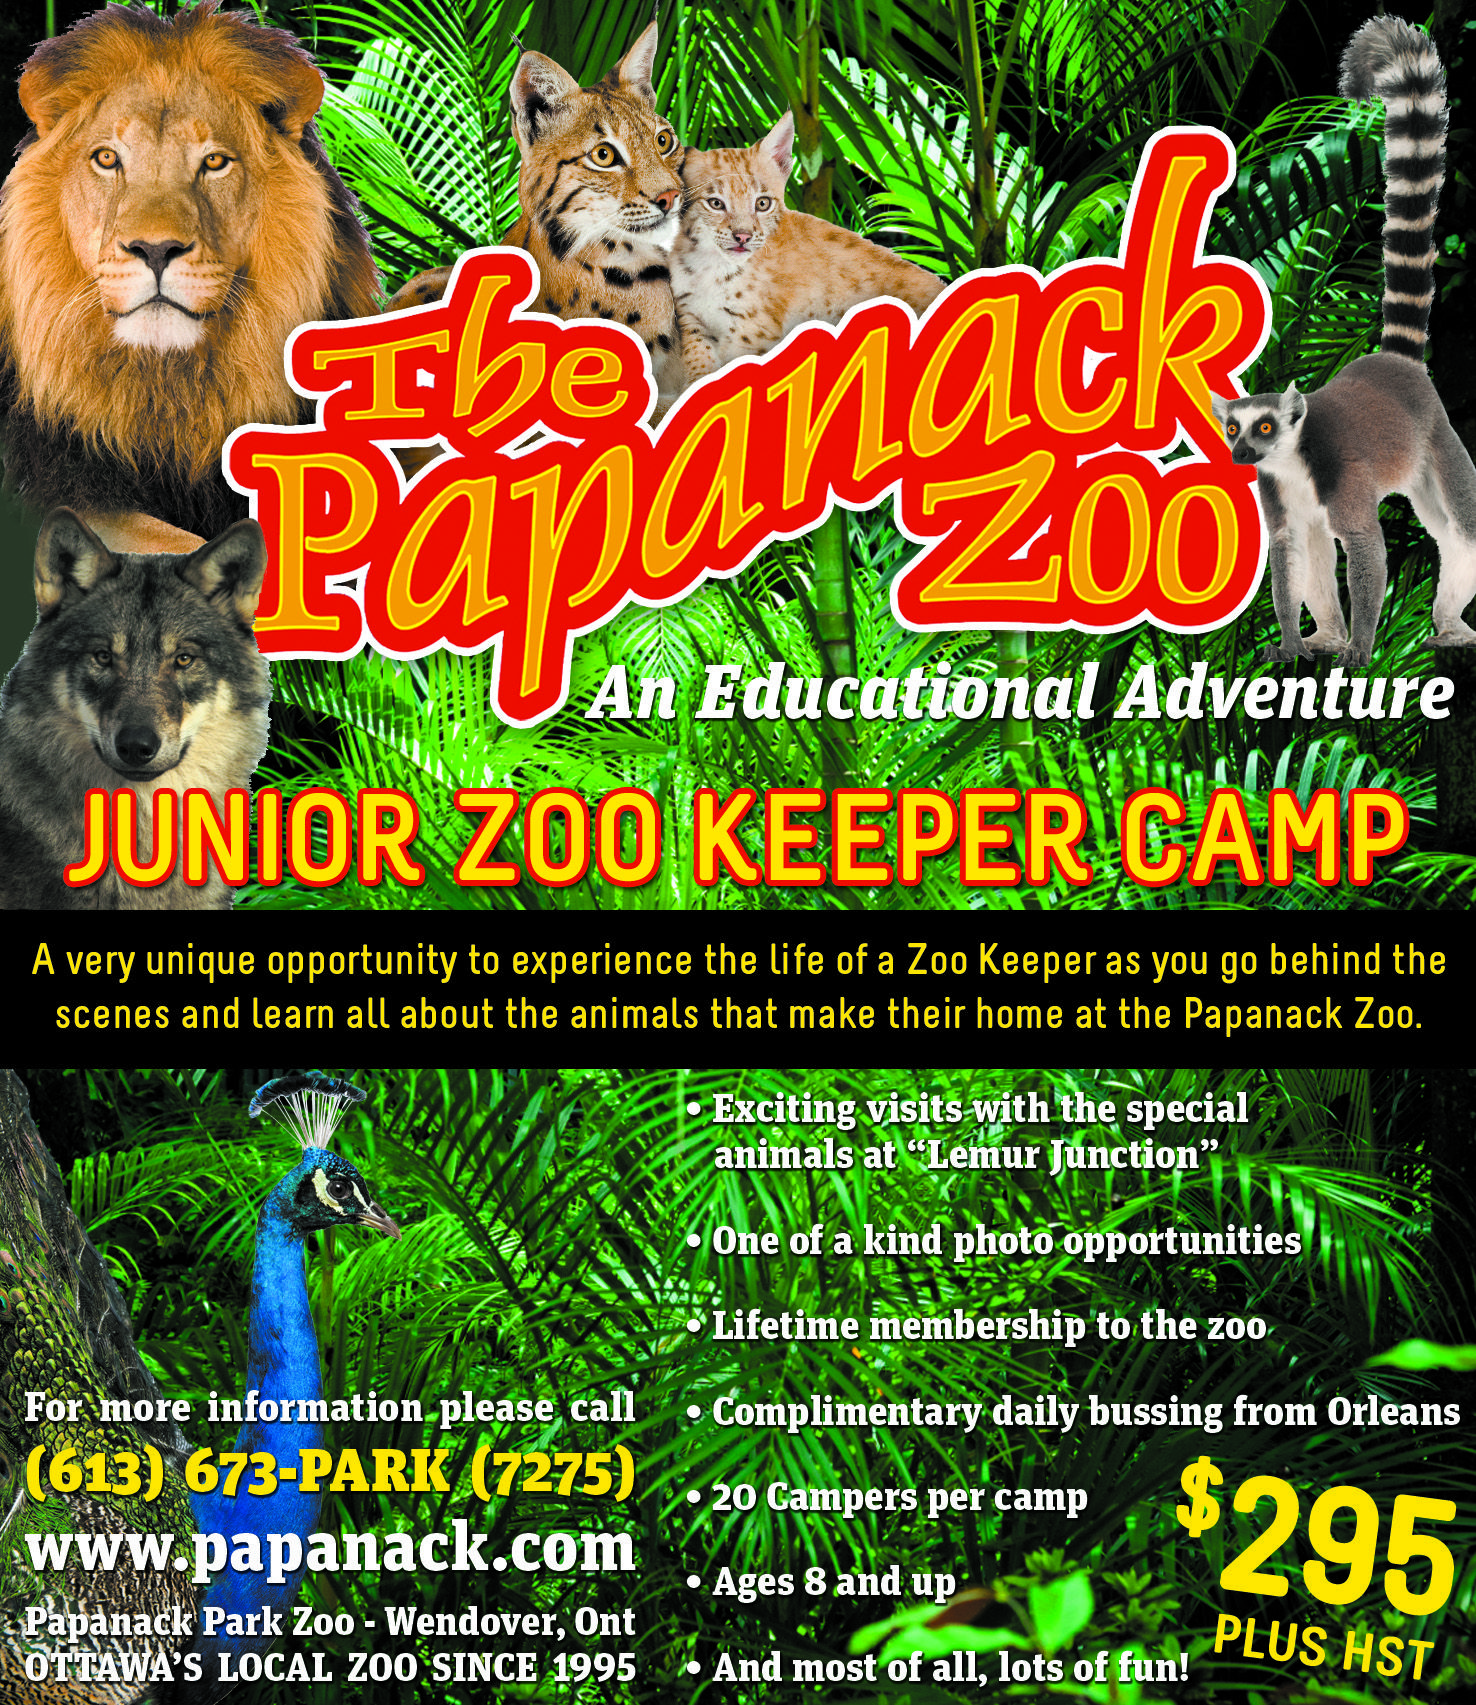 junior zoo keeper camp at papanack zoo papanack park zoo. Black Bedroom Furniture Sets. Home Design Ideas